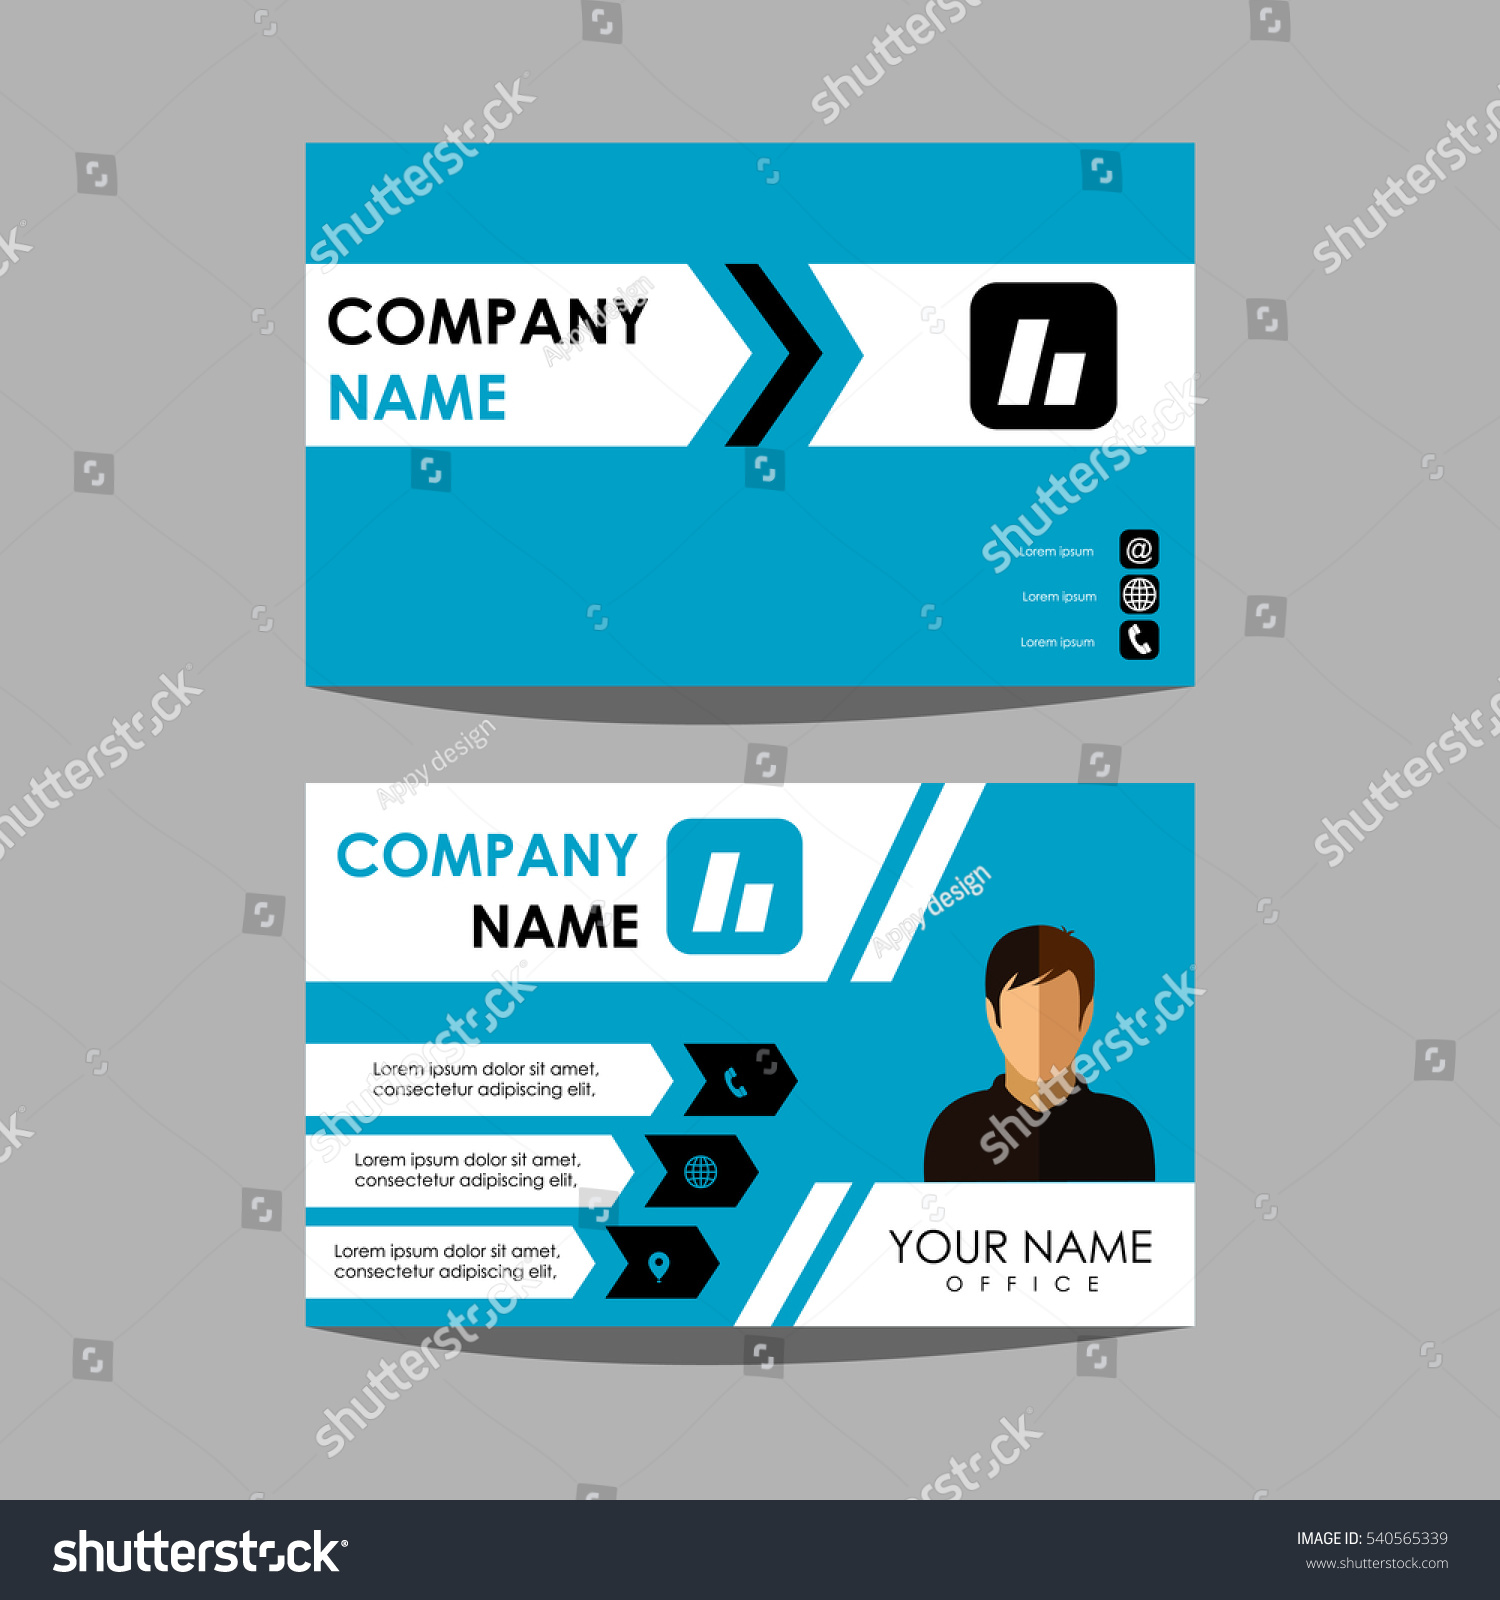 Layout Design Template Id Card Business Stock Vector 540565339 ...